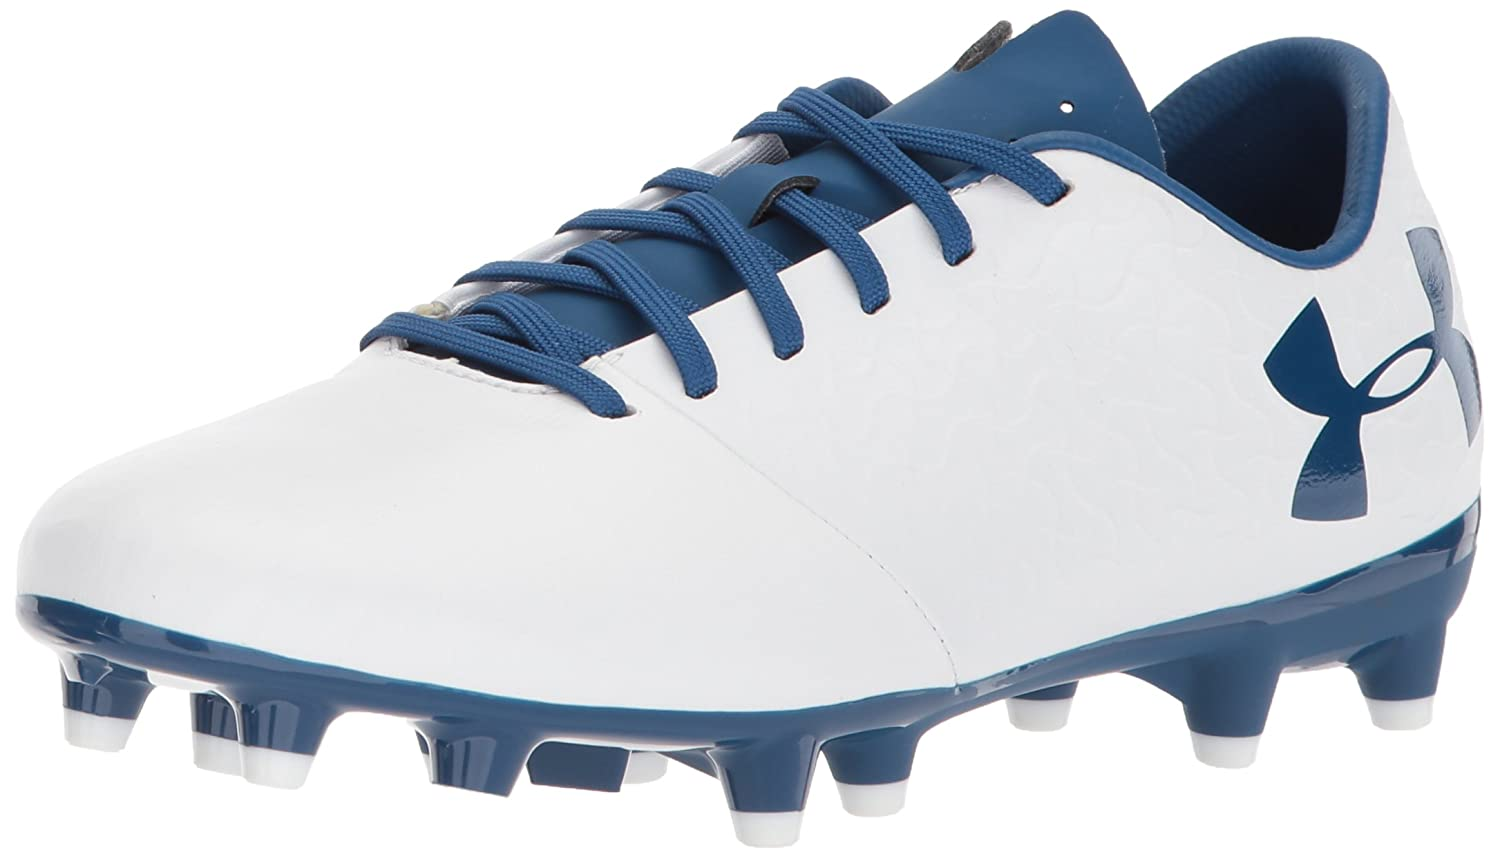 Under Armour Magnetico Select JR Firm Ground Sneaker B071Z8YDRB 1 M US|White (101)/Moroccan Blue